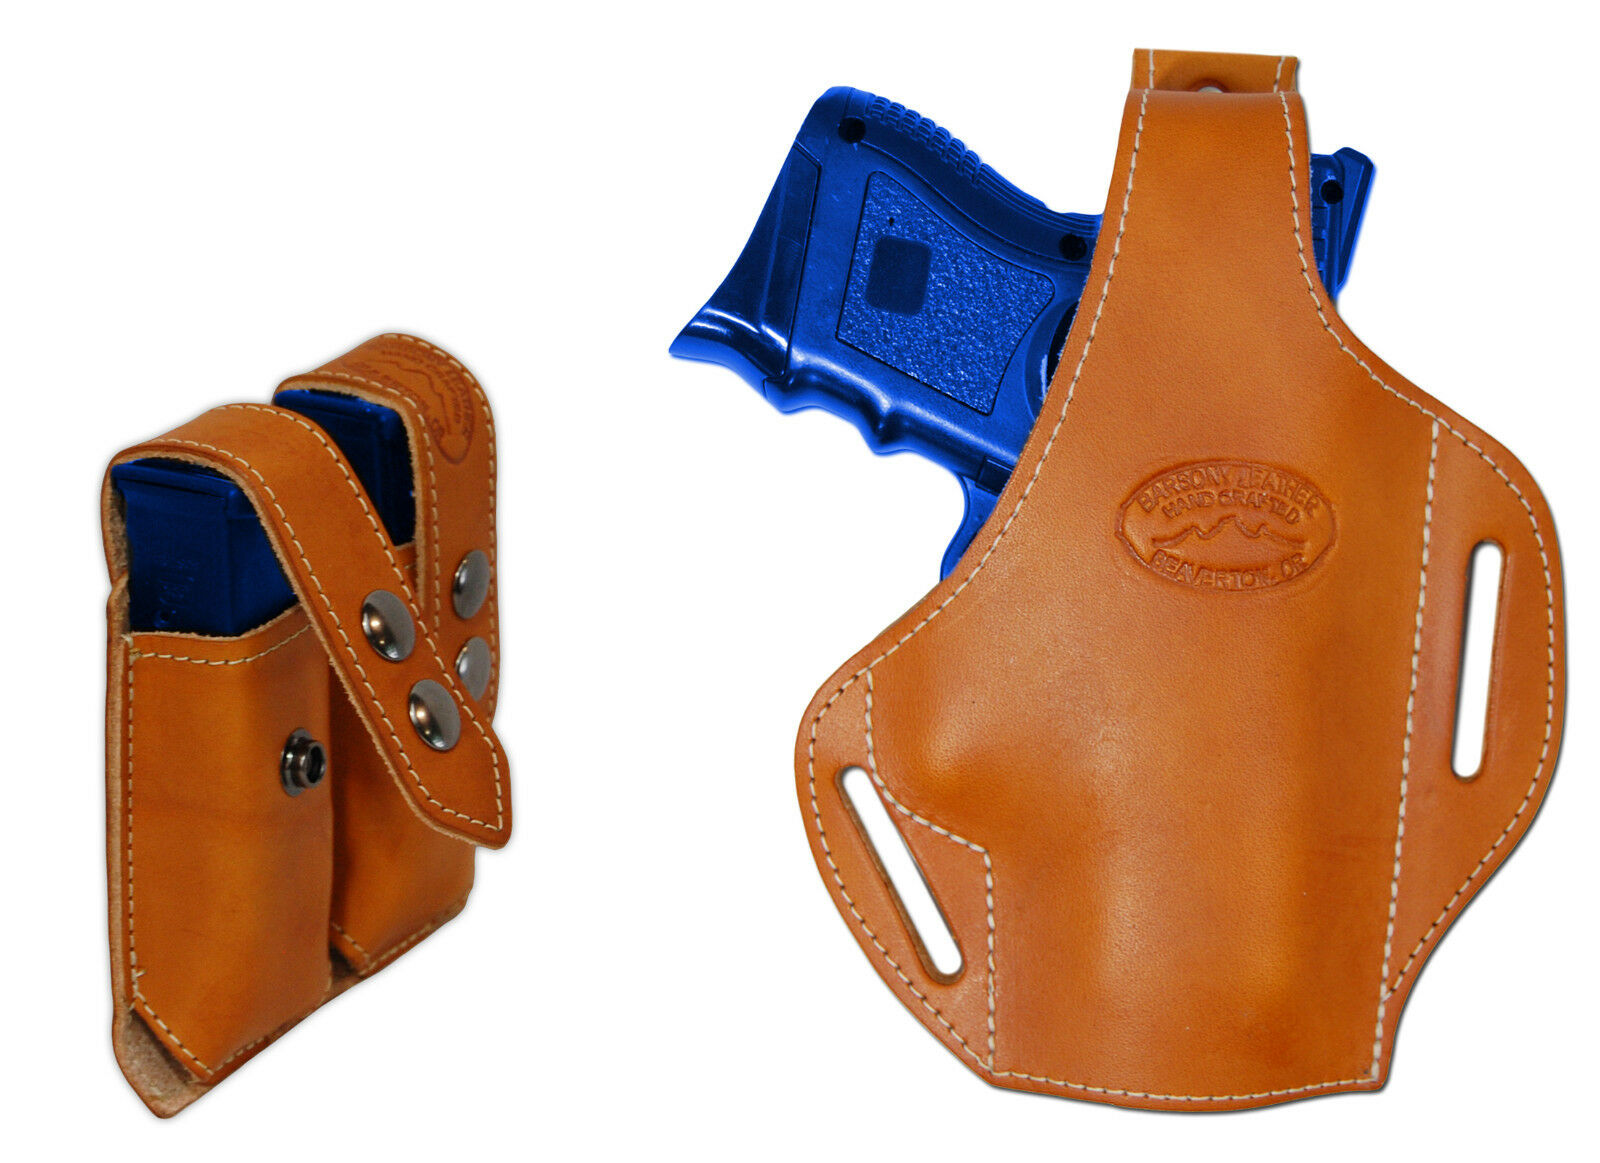 New Tan Leder Pancake Gun Holster + Dbl Mag Pouch Smith&Wesson Comp 9mm 40 45